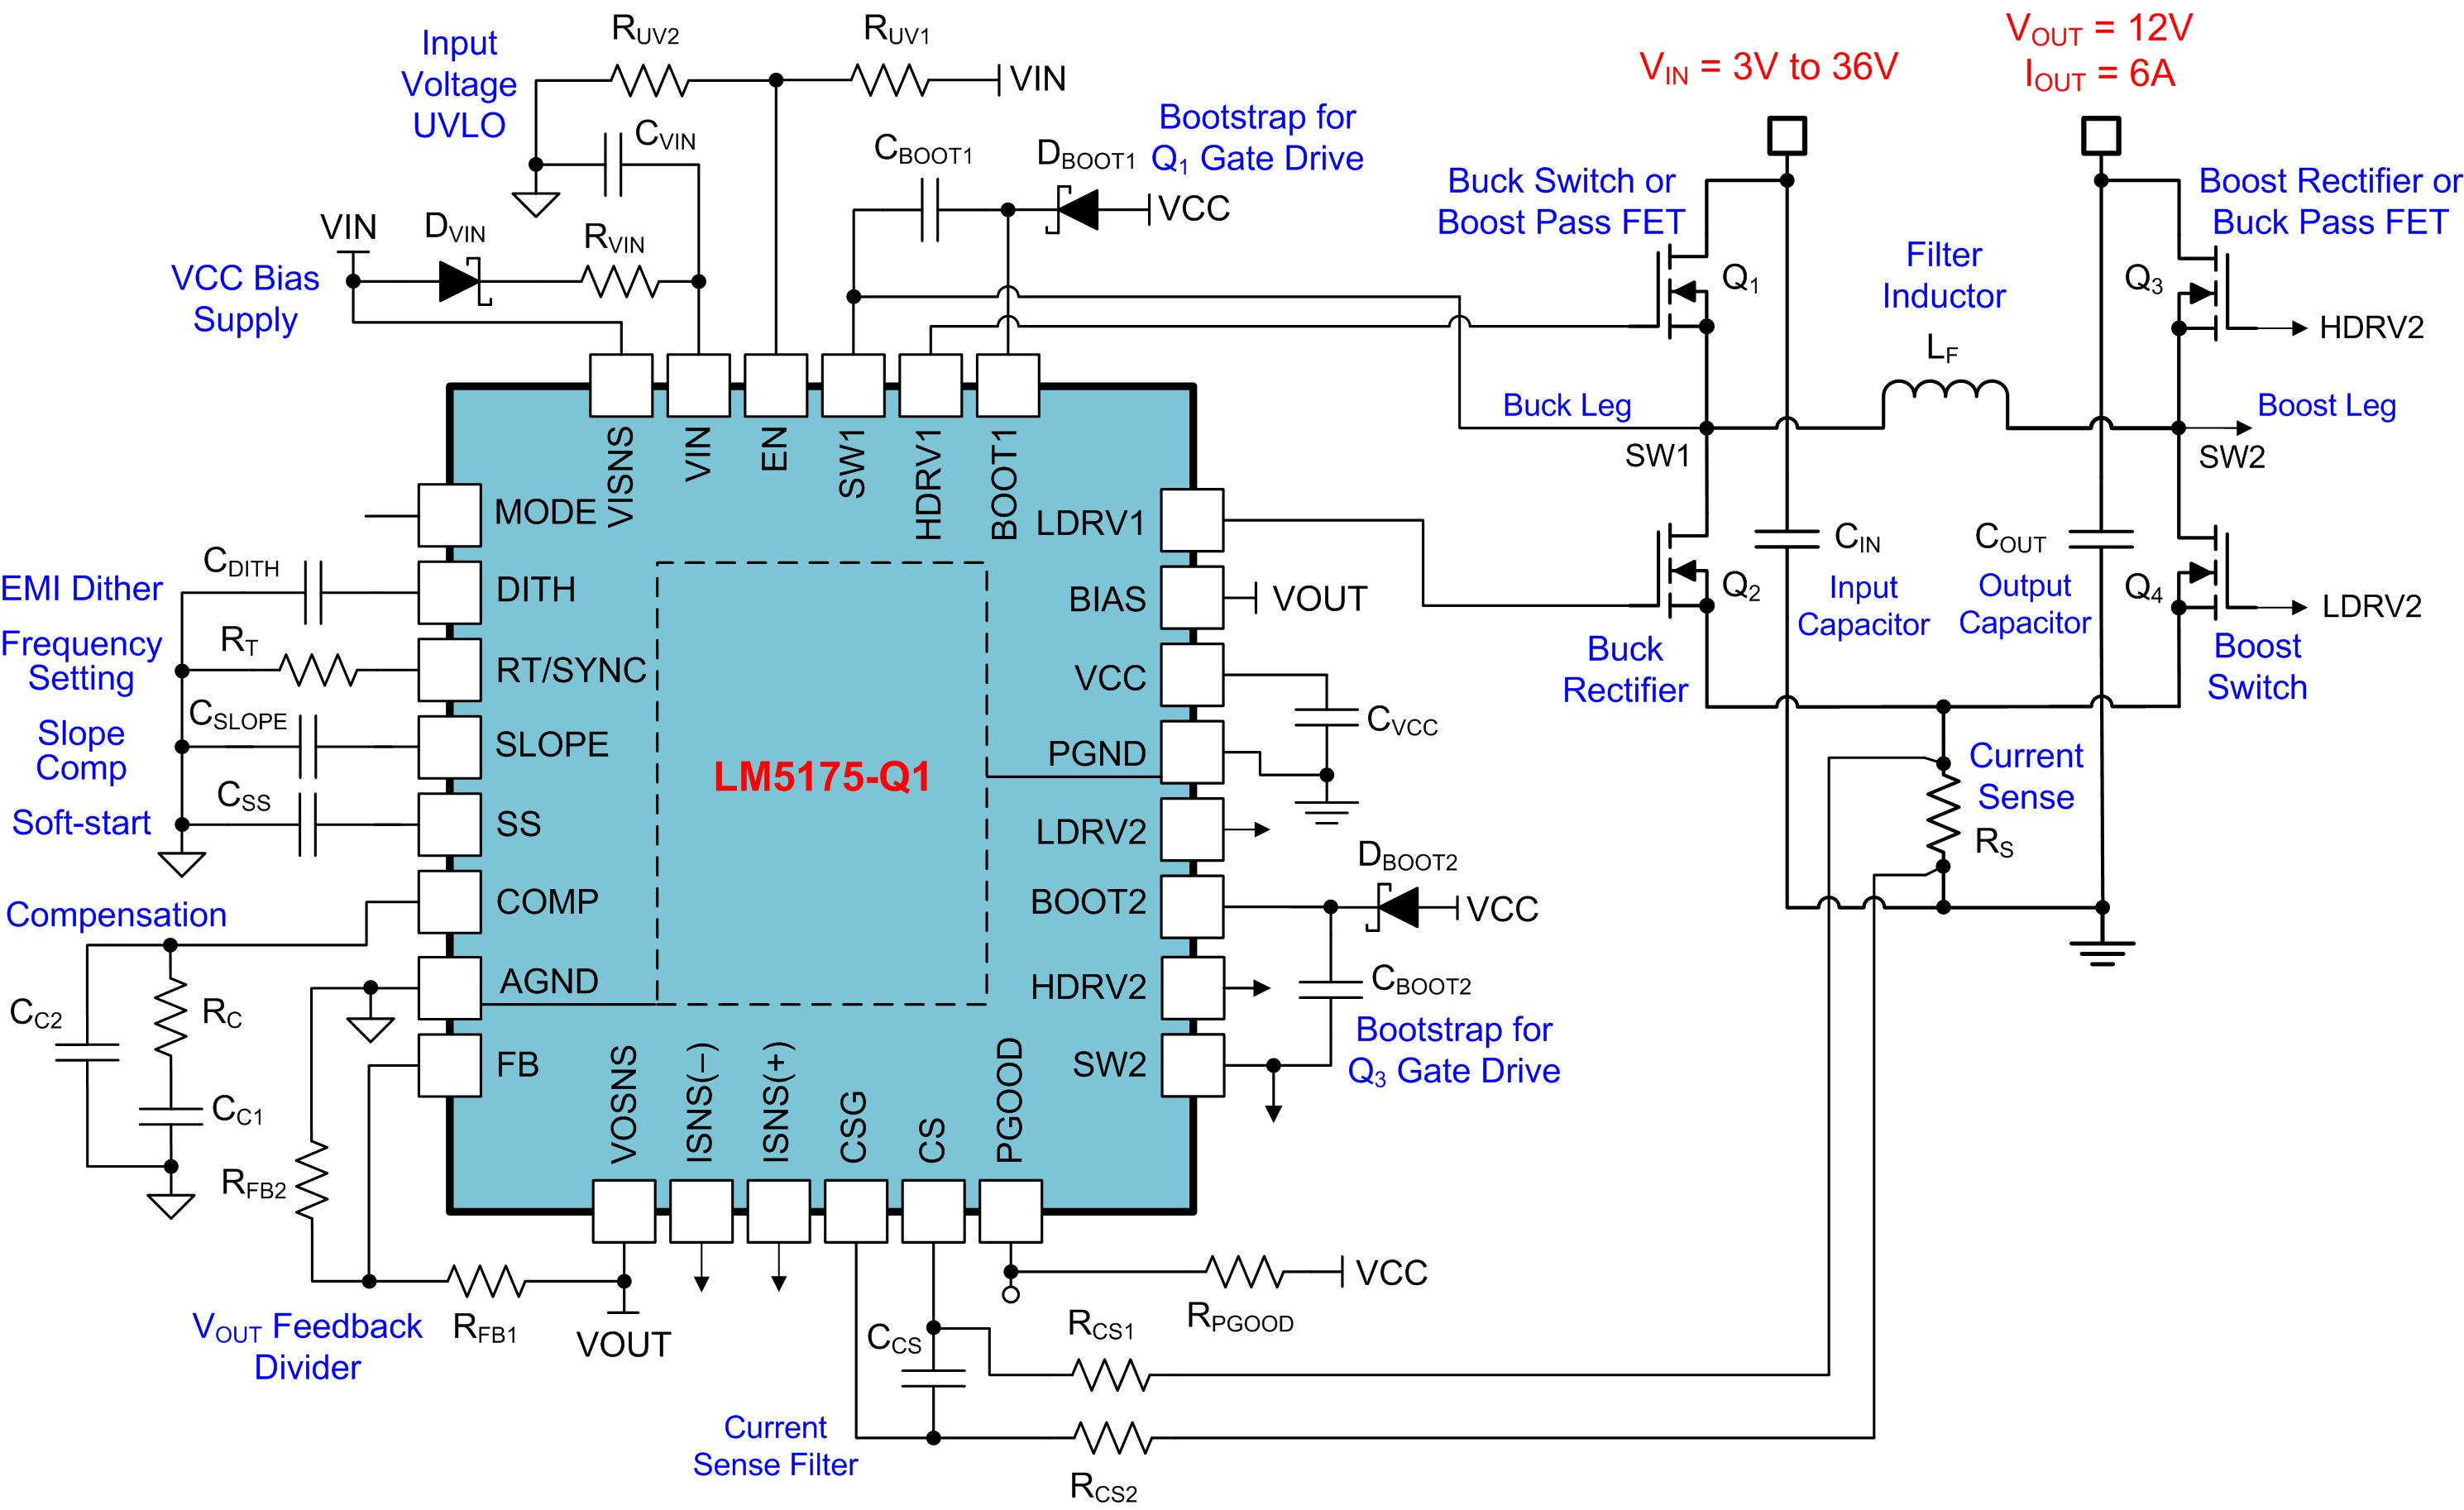 Buck Boost Regulator Benefits Automotive Conducted Immunity Power With Output 12v Electronics Forum Circuits Projects And Figure 2 Four Switch Synchronous Solution A Wide Vin Range Of 3v To 36v